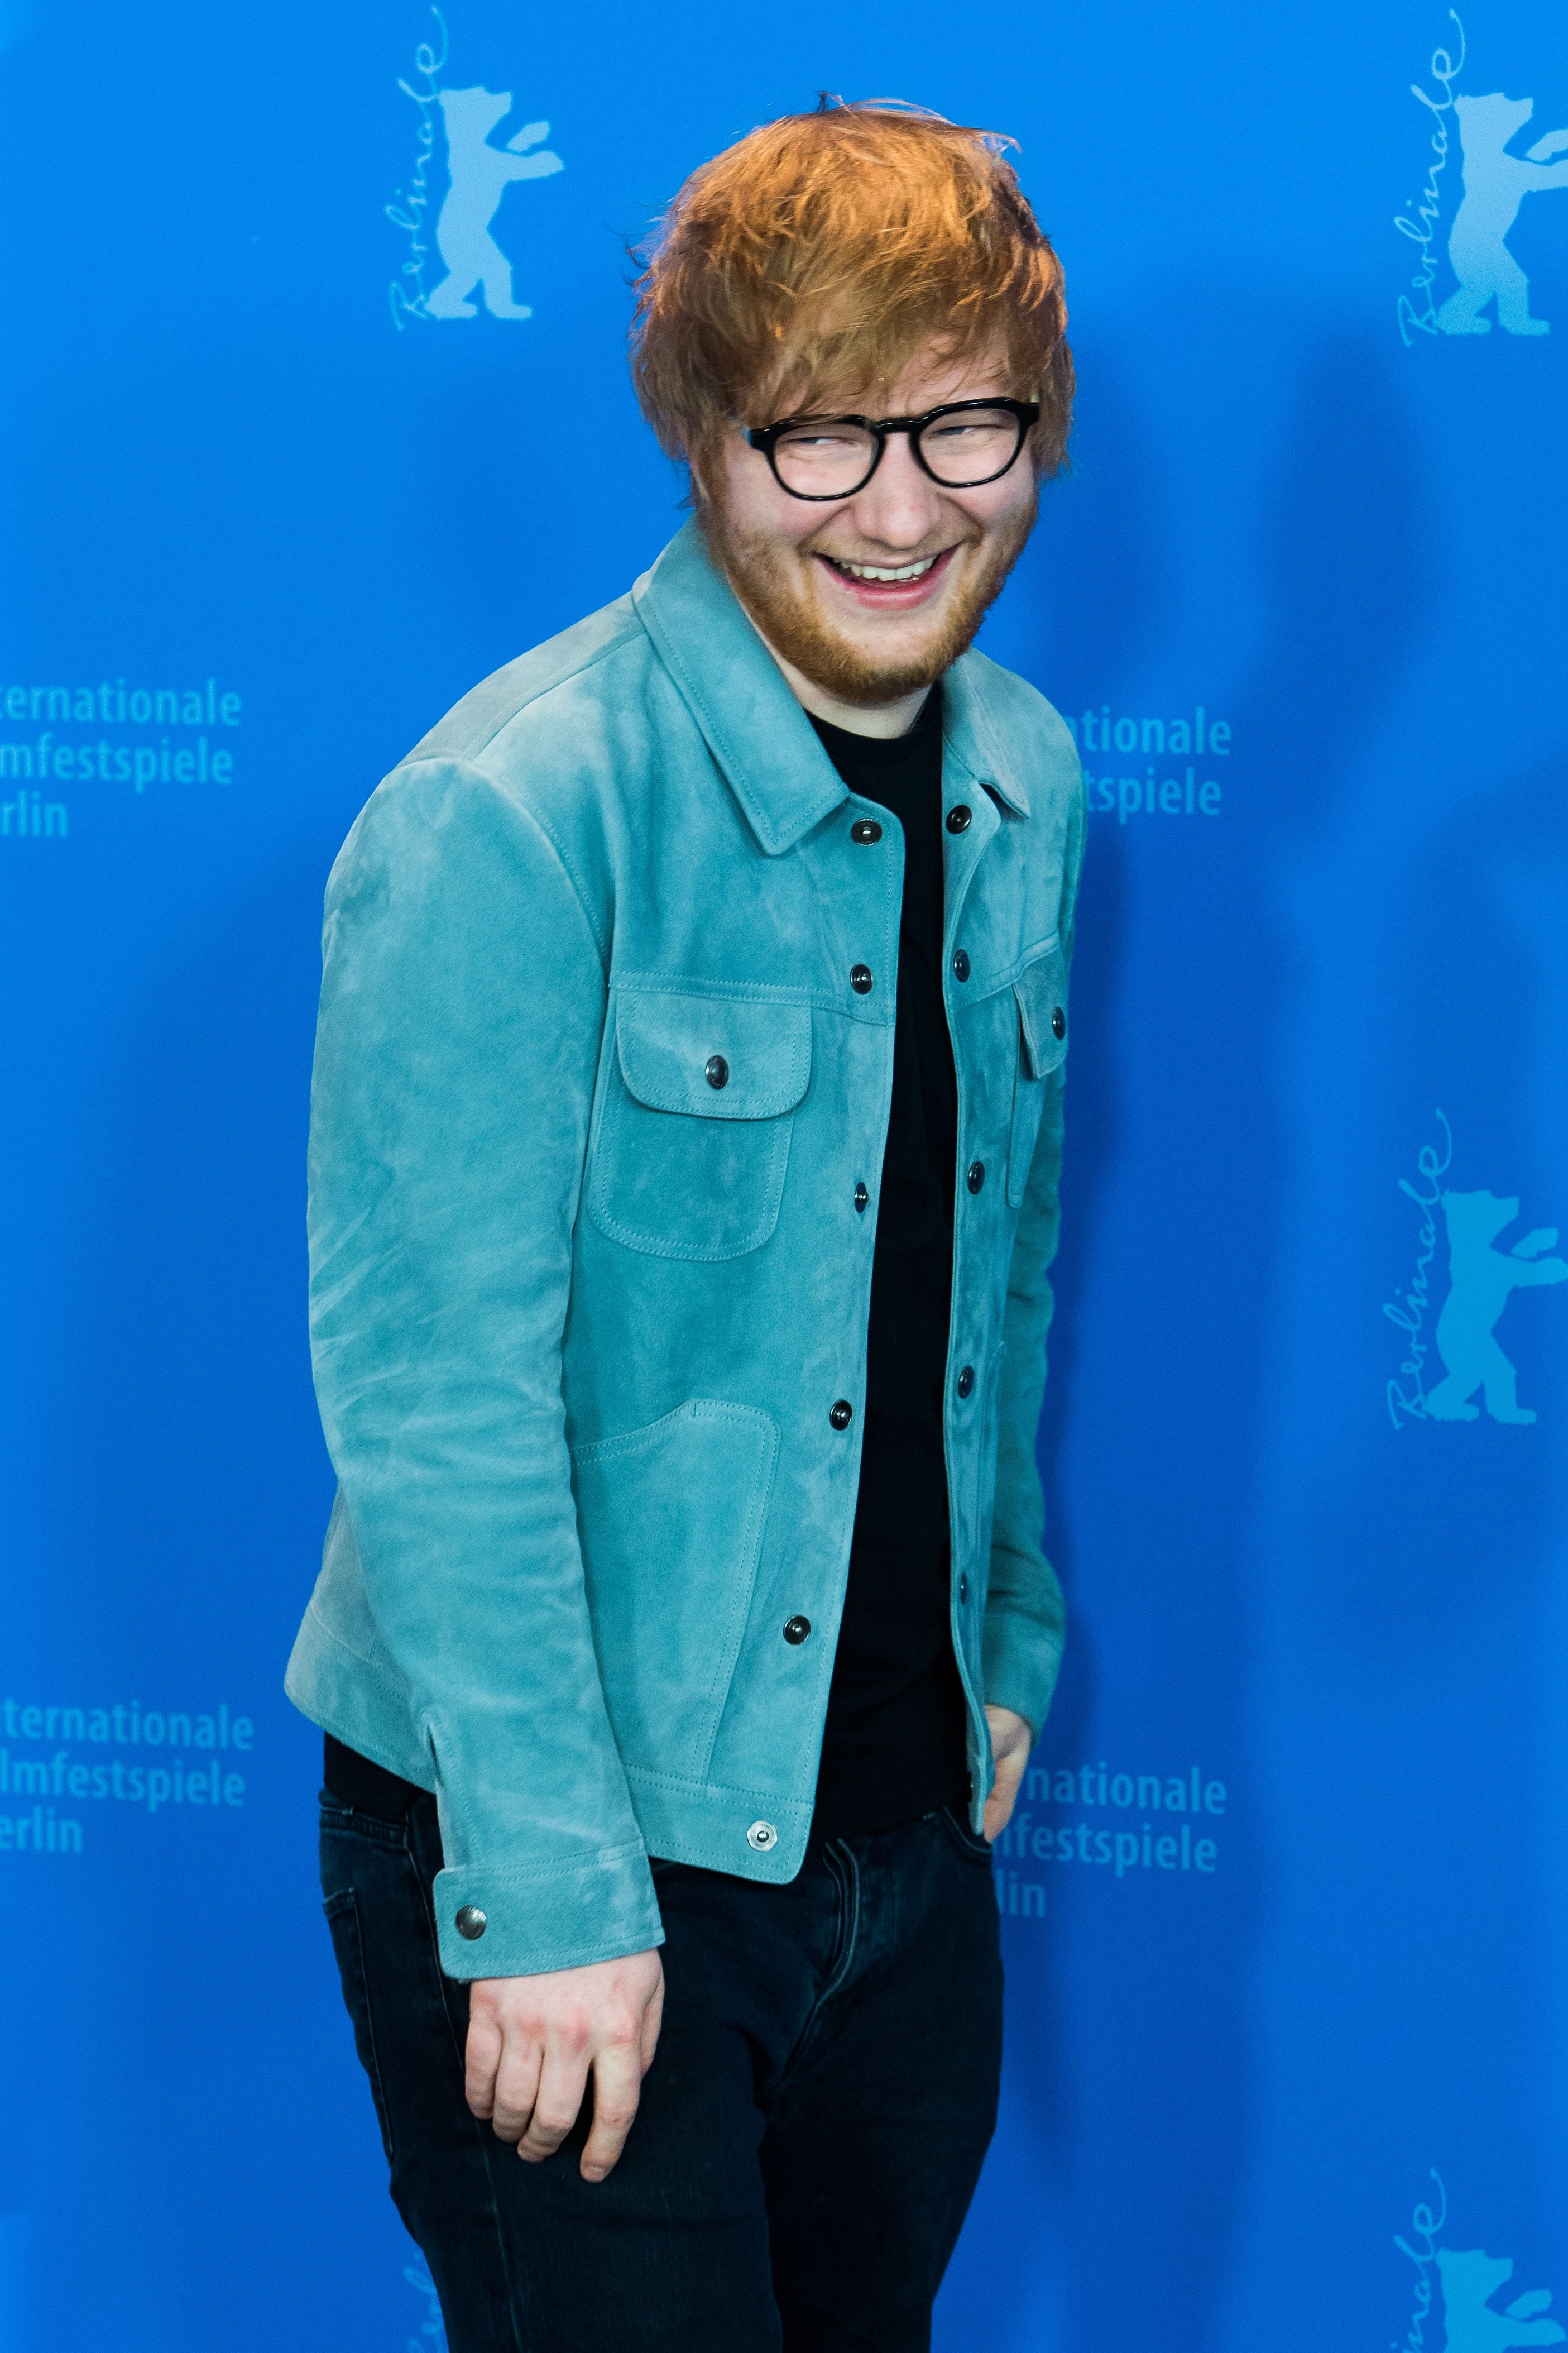 Ed Sheeran poses at the 'Songwriter' photo call during the 68th Berlinale International Film Festival Berlin at Grand Hyatt Hotel on February 23, 2018 in Berlin, Germany. | Source: Getty Images